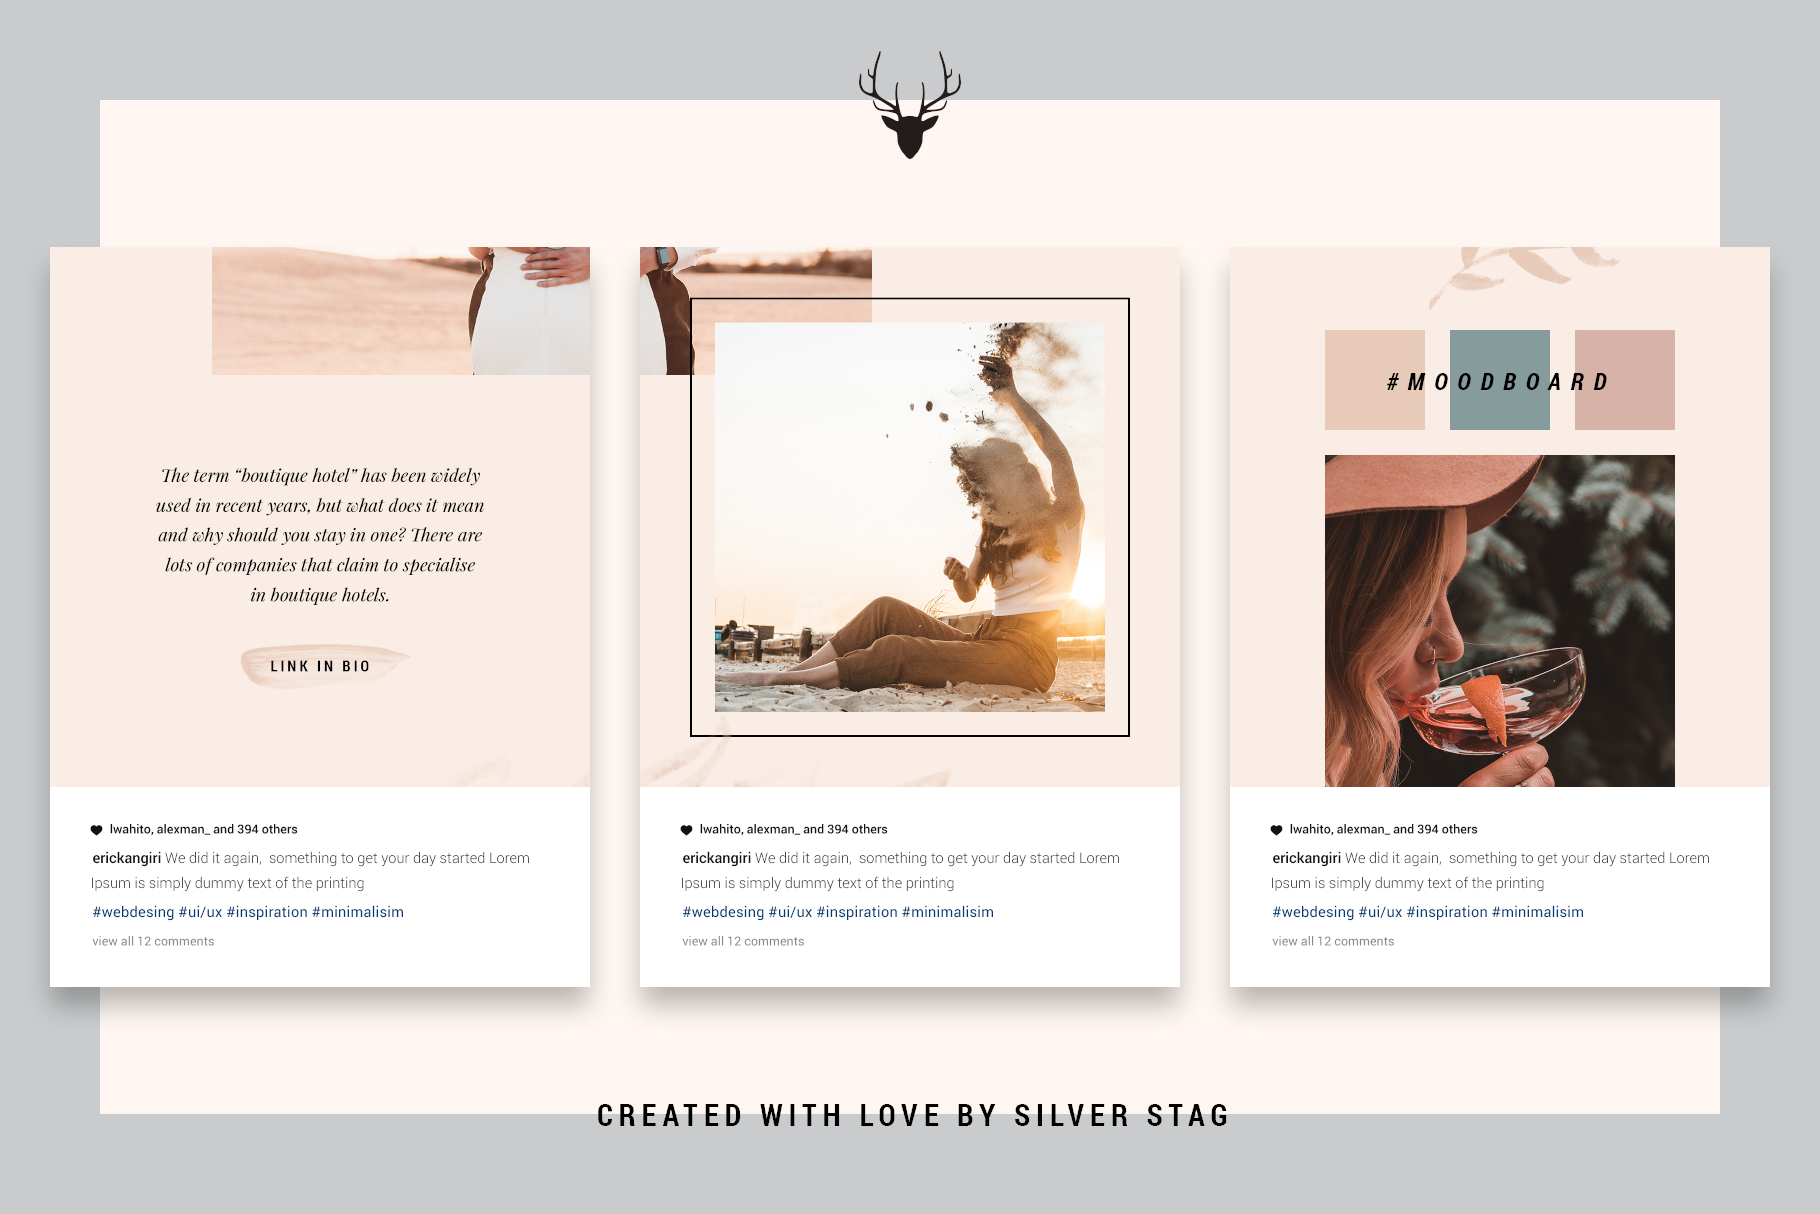 InstaGrid 5.0 - Creative & Modern Instagram Puzzle Template example image 5